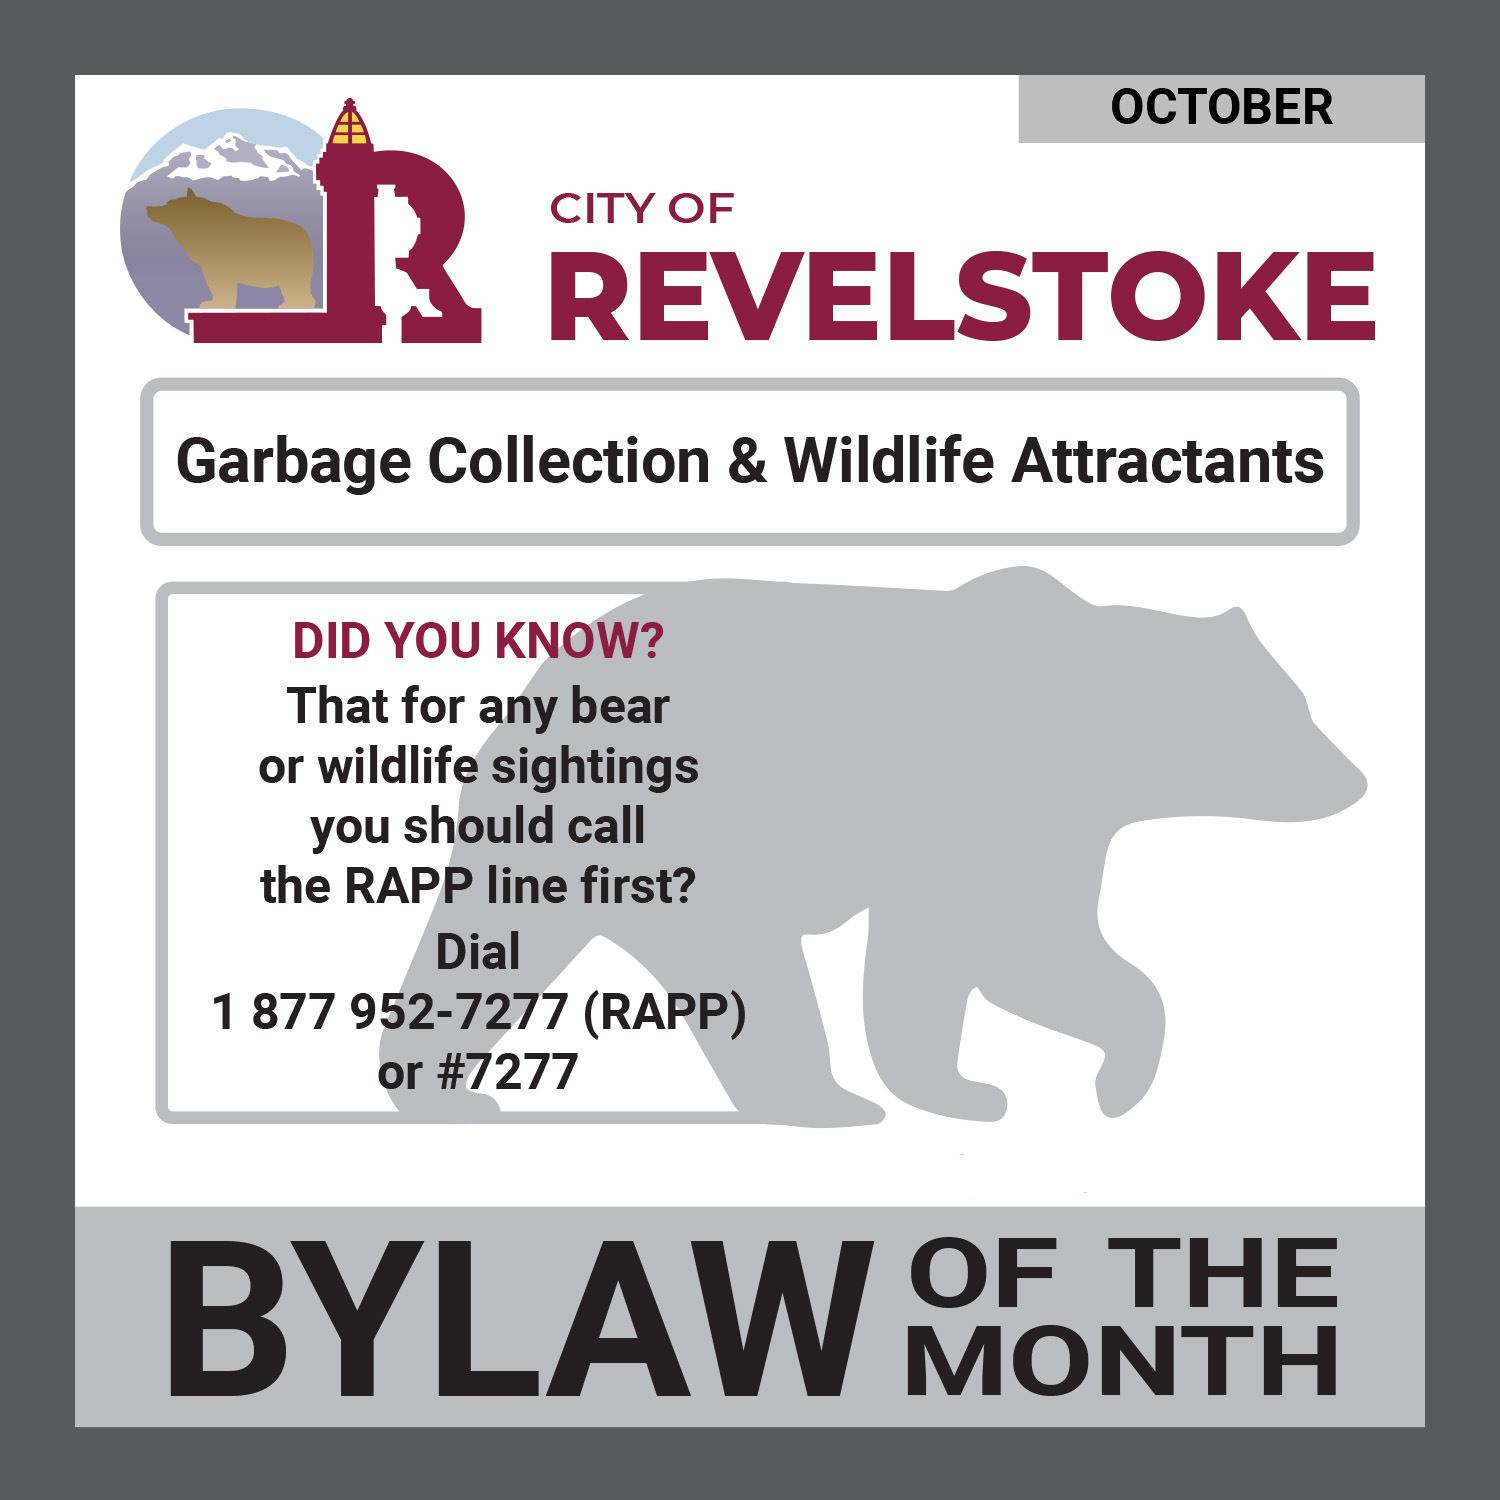 Bylaw of the Month_October_Garbage Collection and Wildlife Attractants-web page